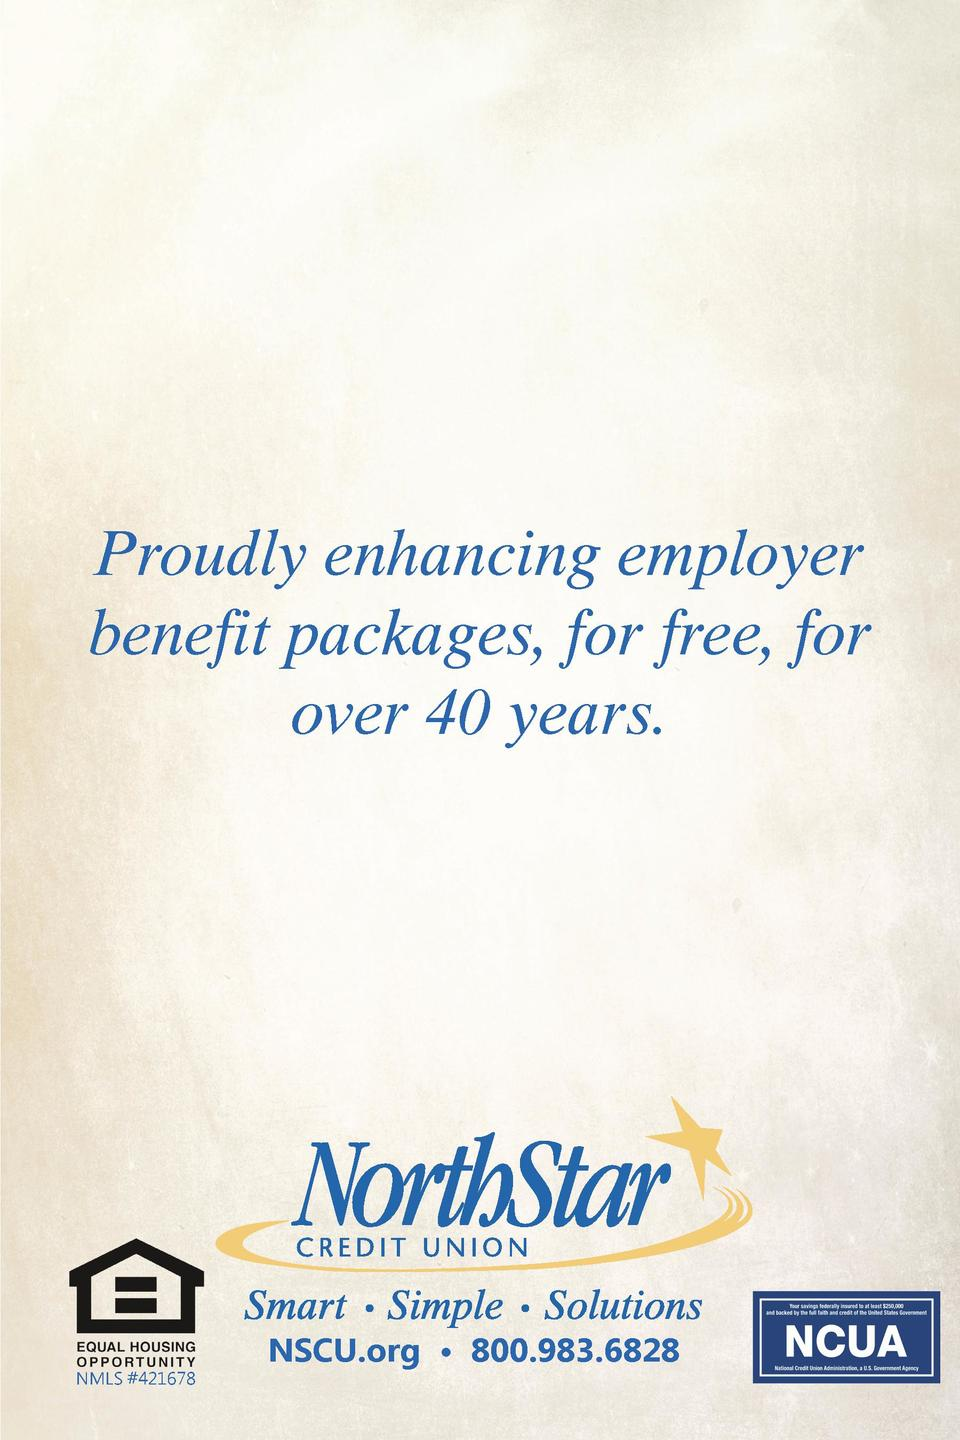 Proudly enhancing employer benefit packages, for free, for over 40 years.  NMLS  421678  NSCU.org     800.983.6828